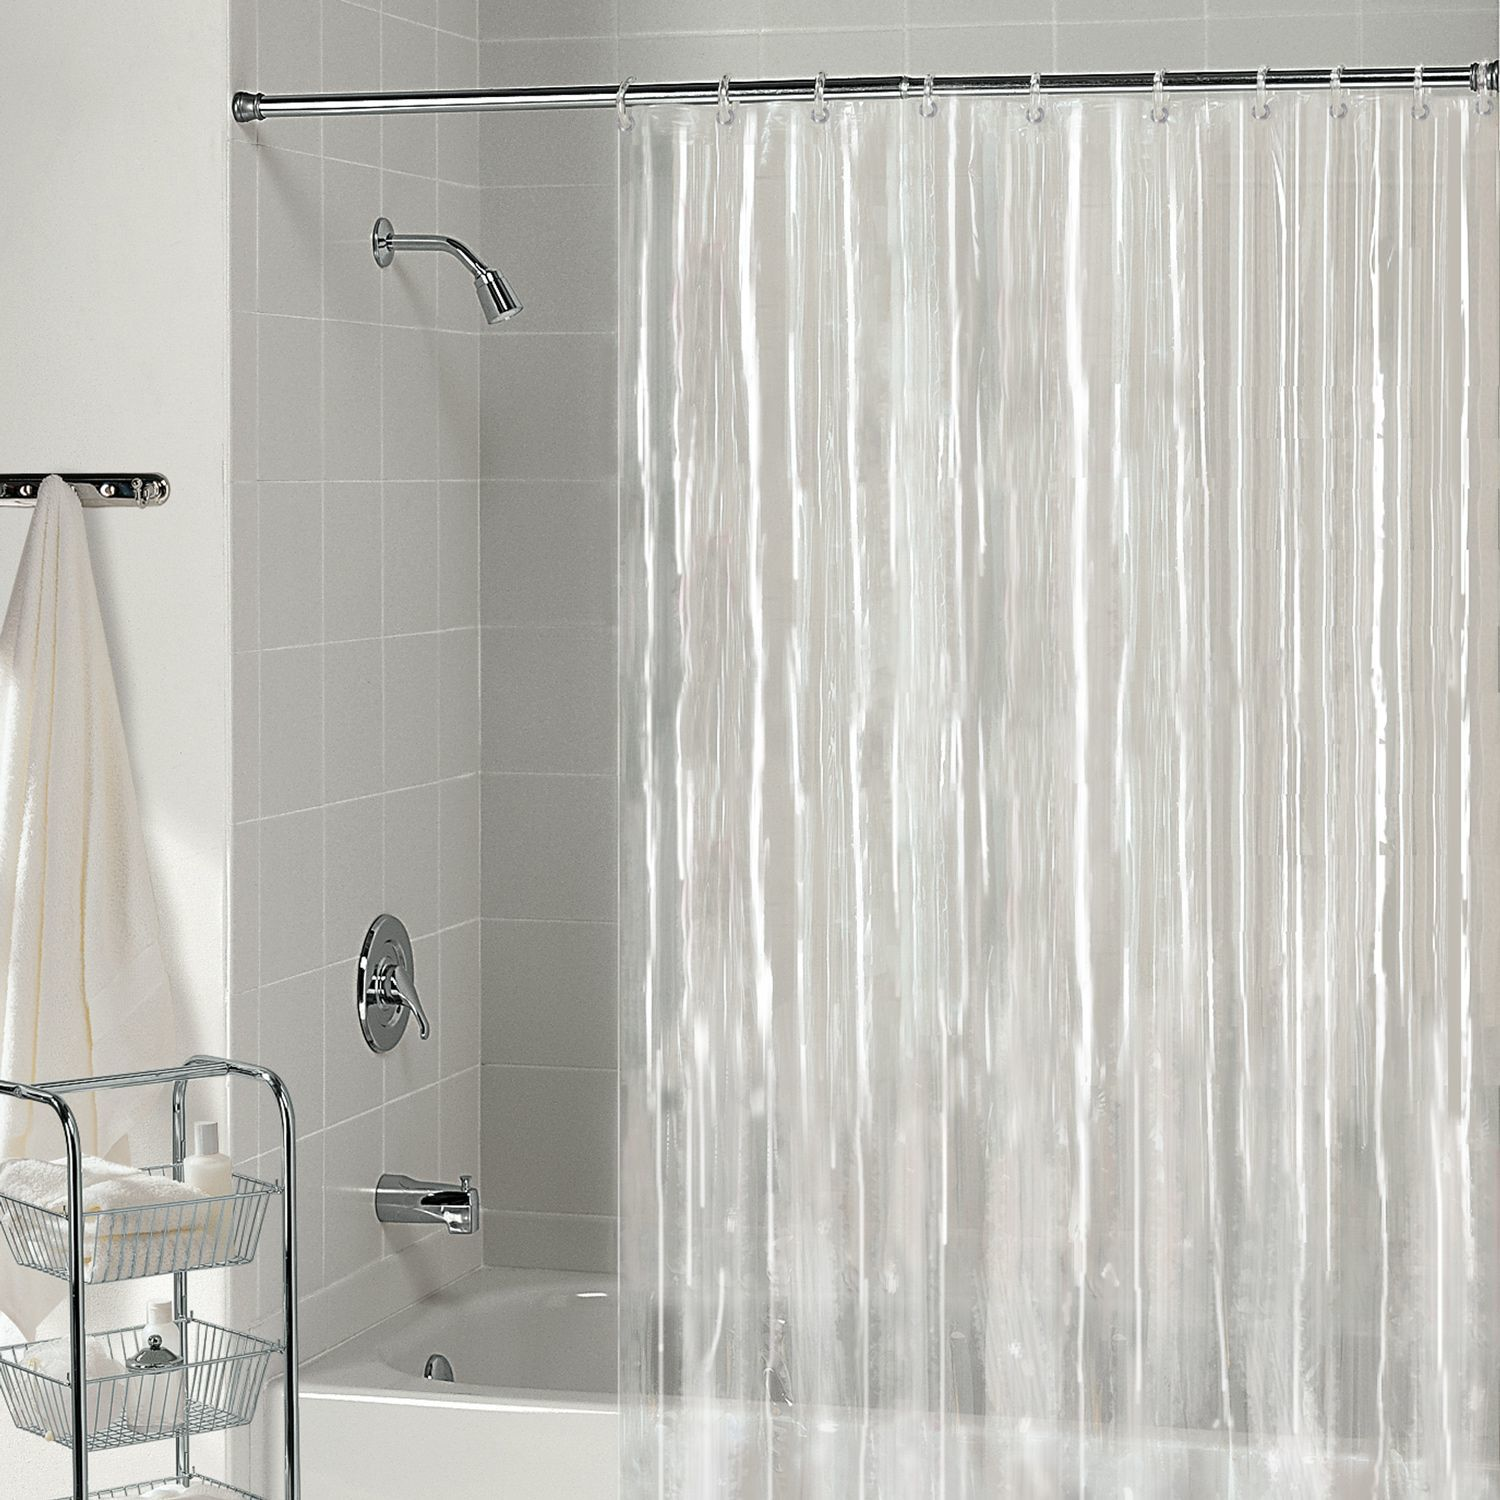 Bathroom Shower Curtain Liner Non Toxic